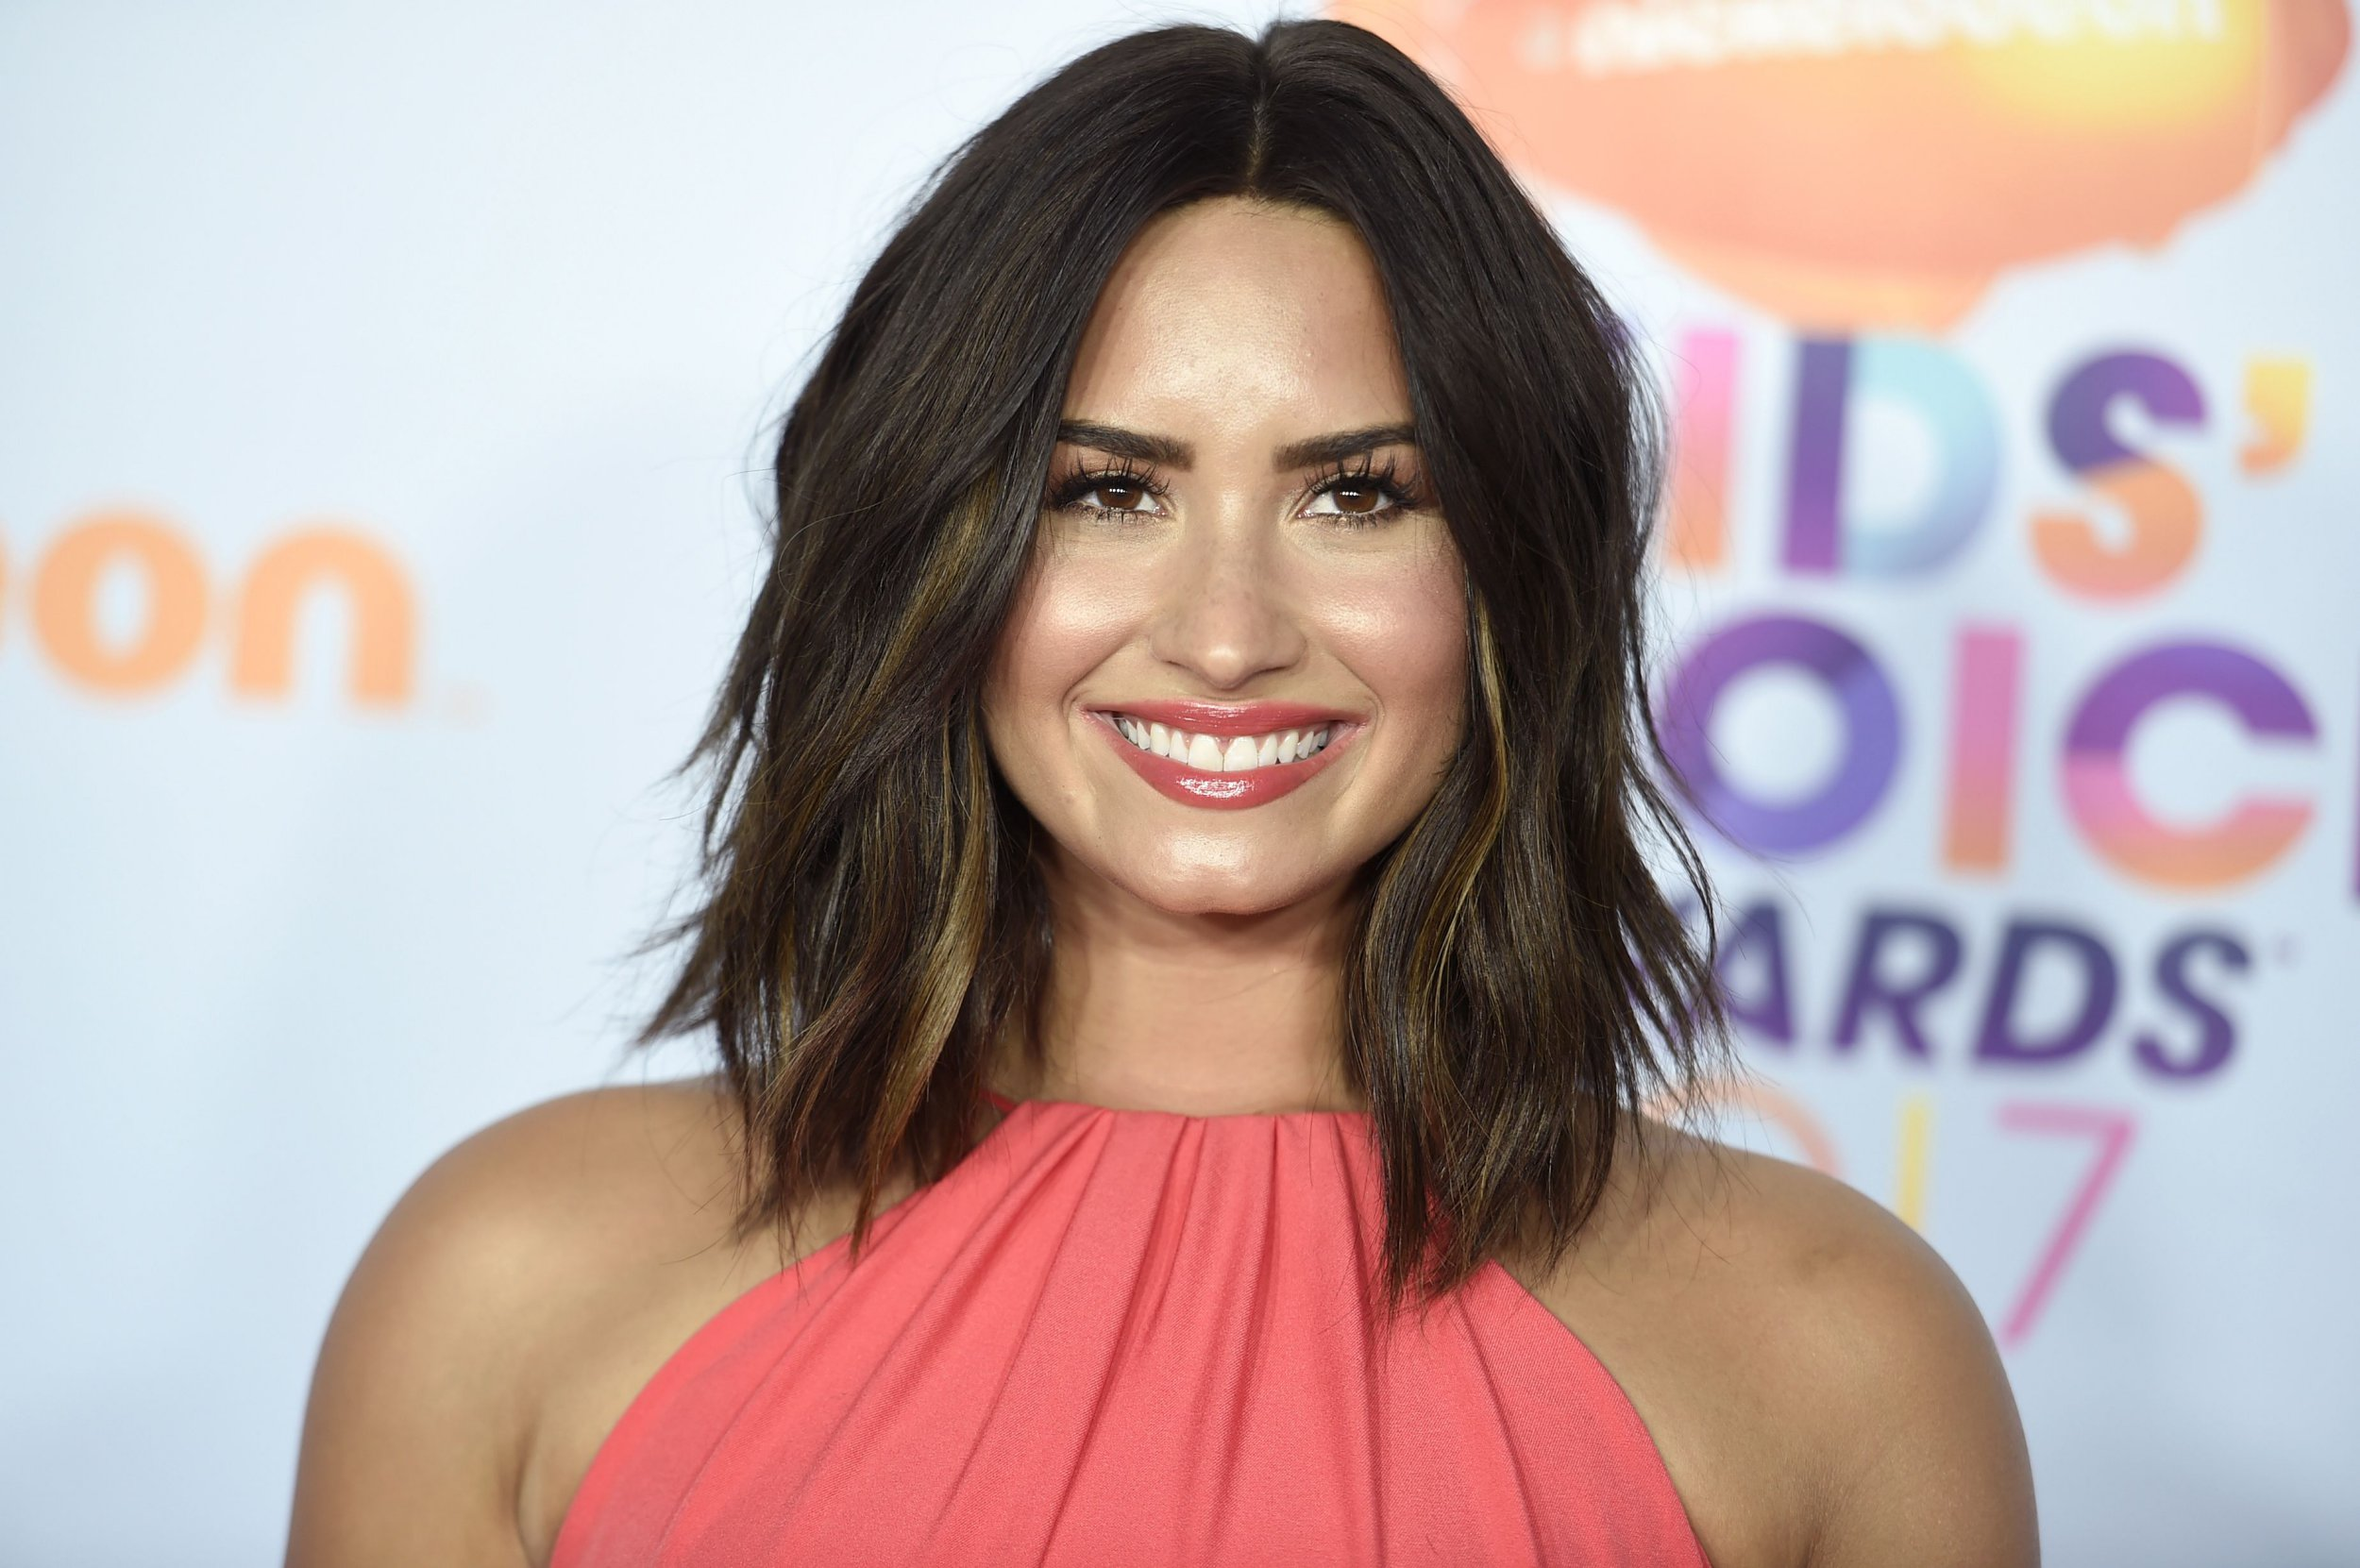 Demi Lovato smiles as she's seen for first time since being admitted to rehab following overdose